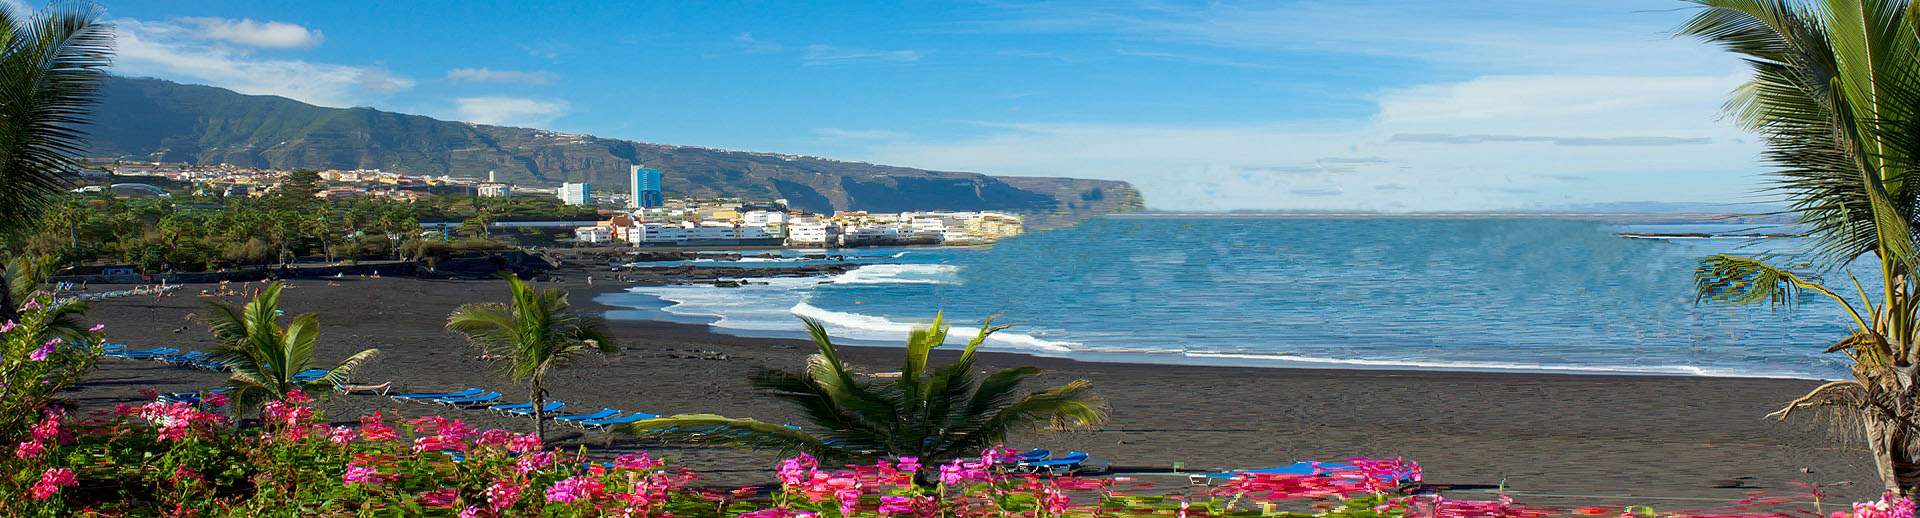 canarie-006